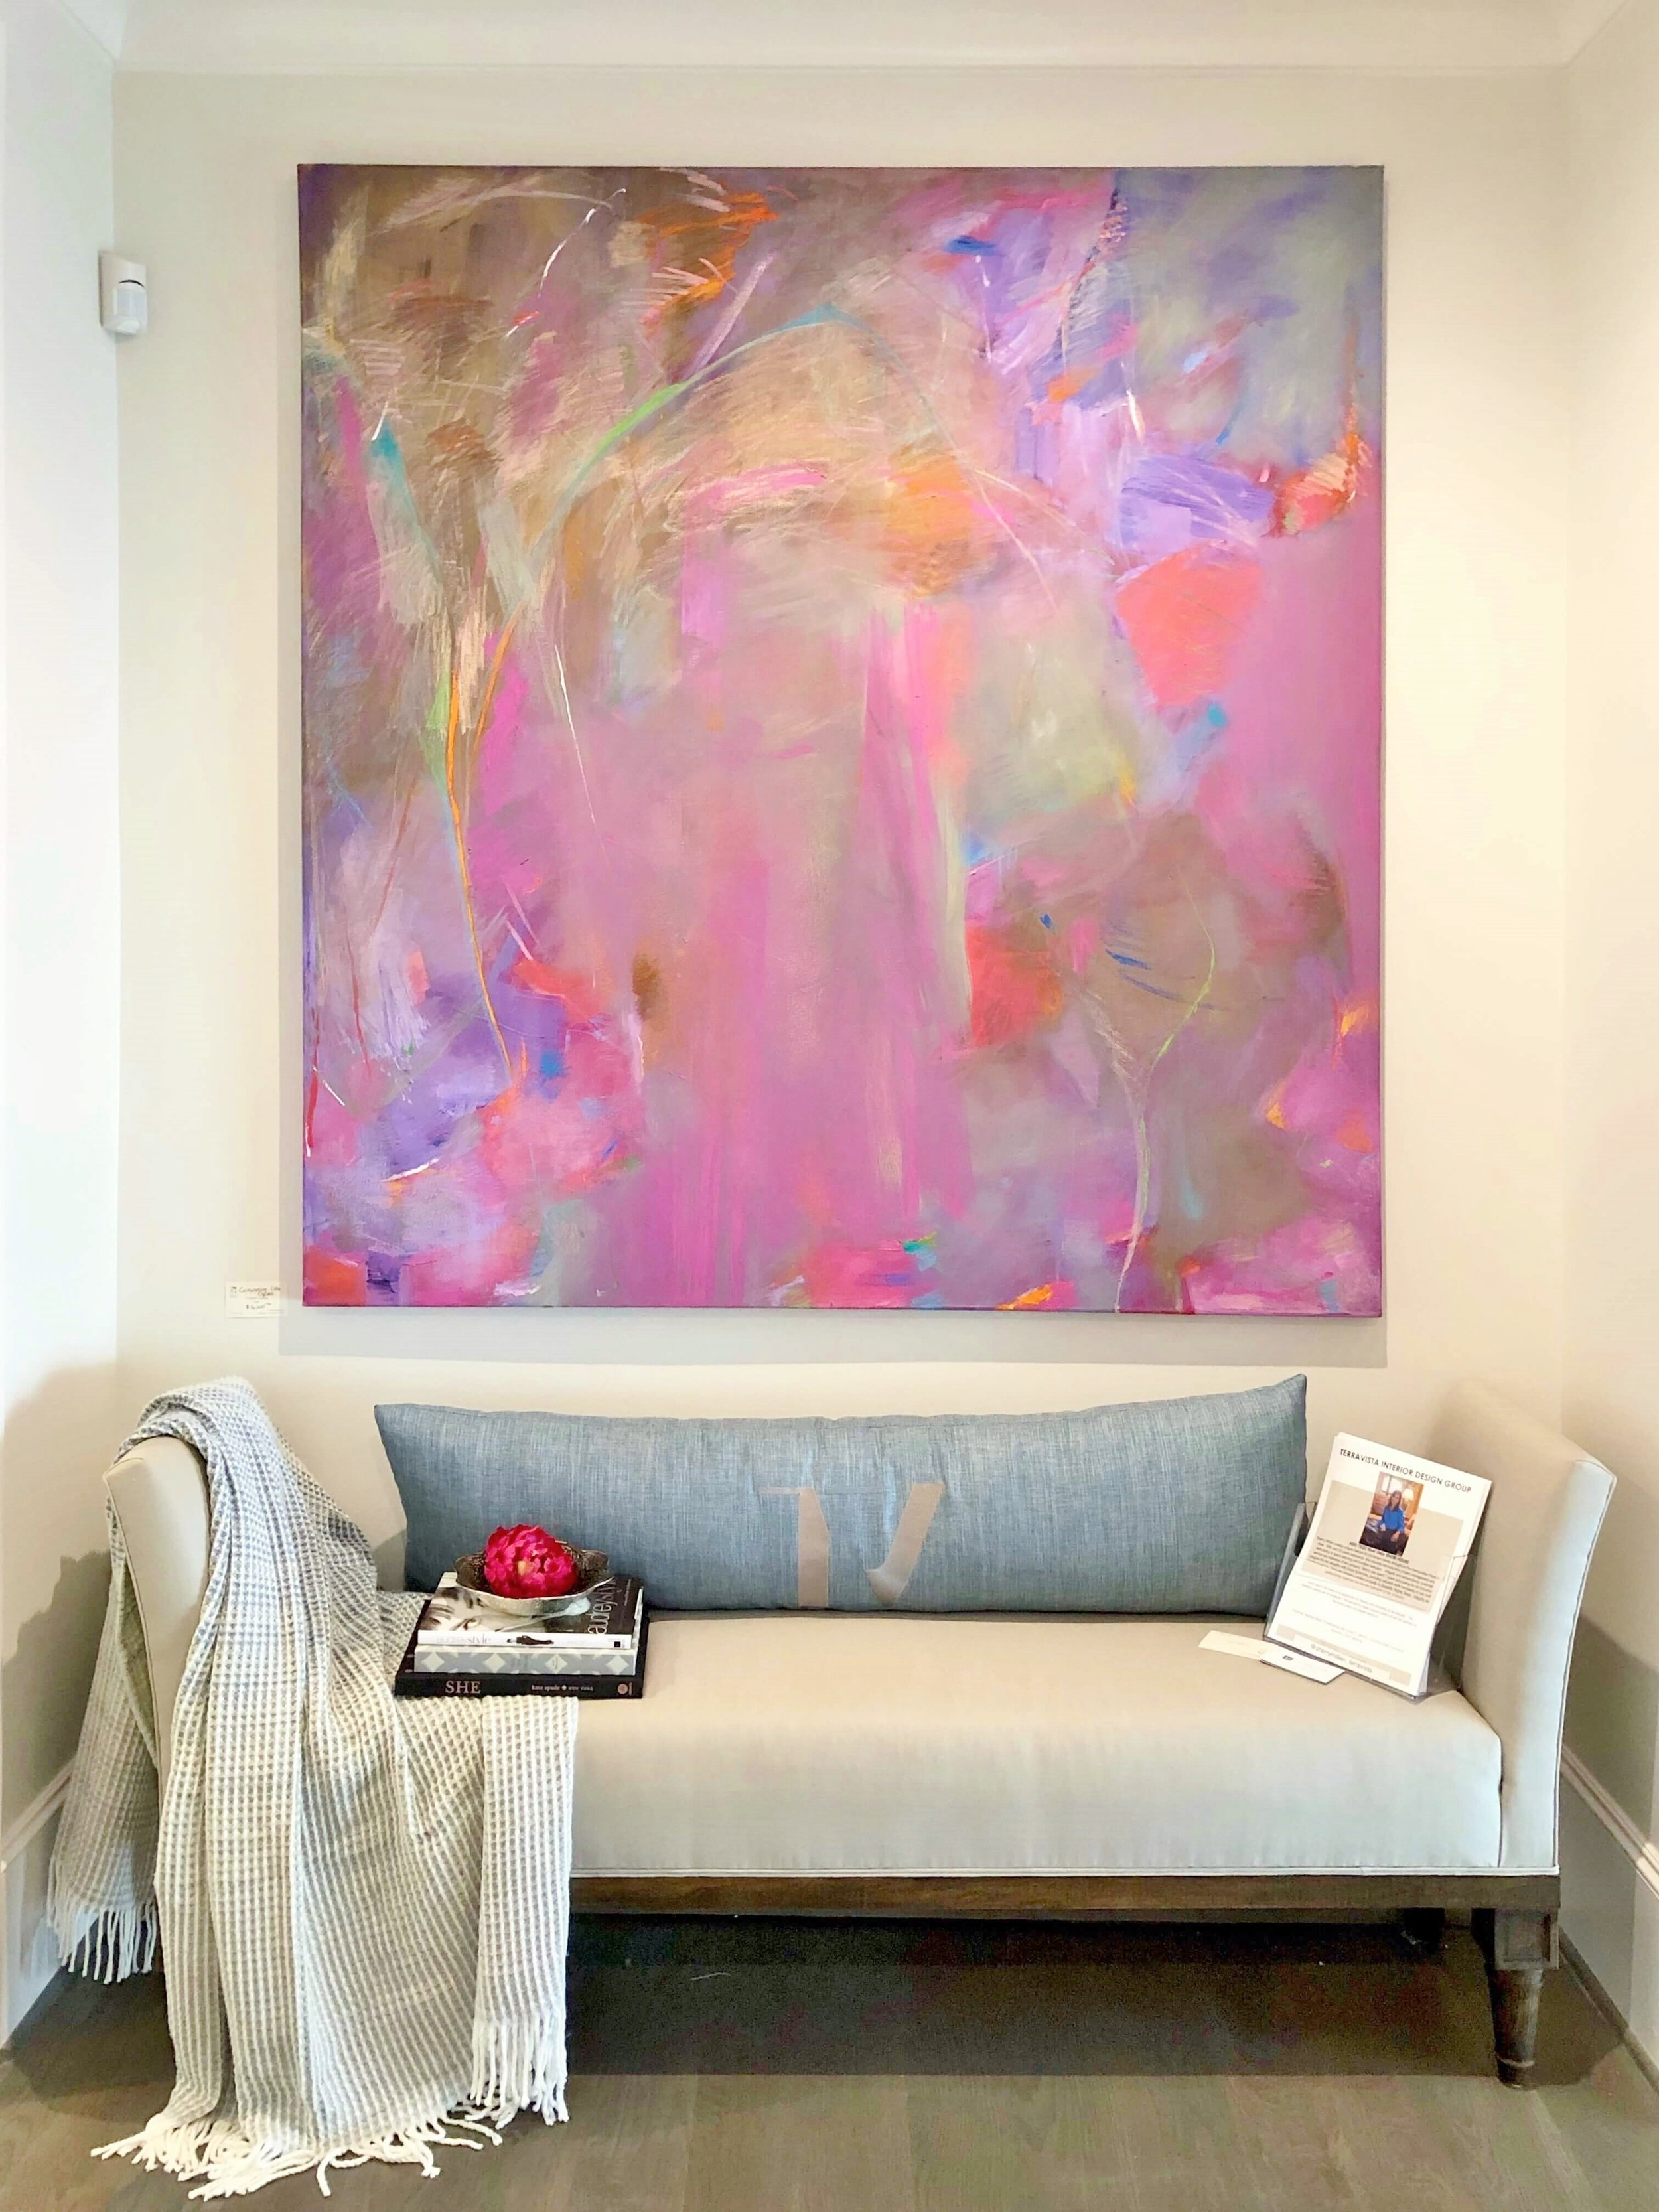 This colorful art made a strong statement in this hallway niche designed by Sherry Millien of TerraVista Design at the ASID Showhouse, River Oaks, Houston. #settee #pinkart